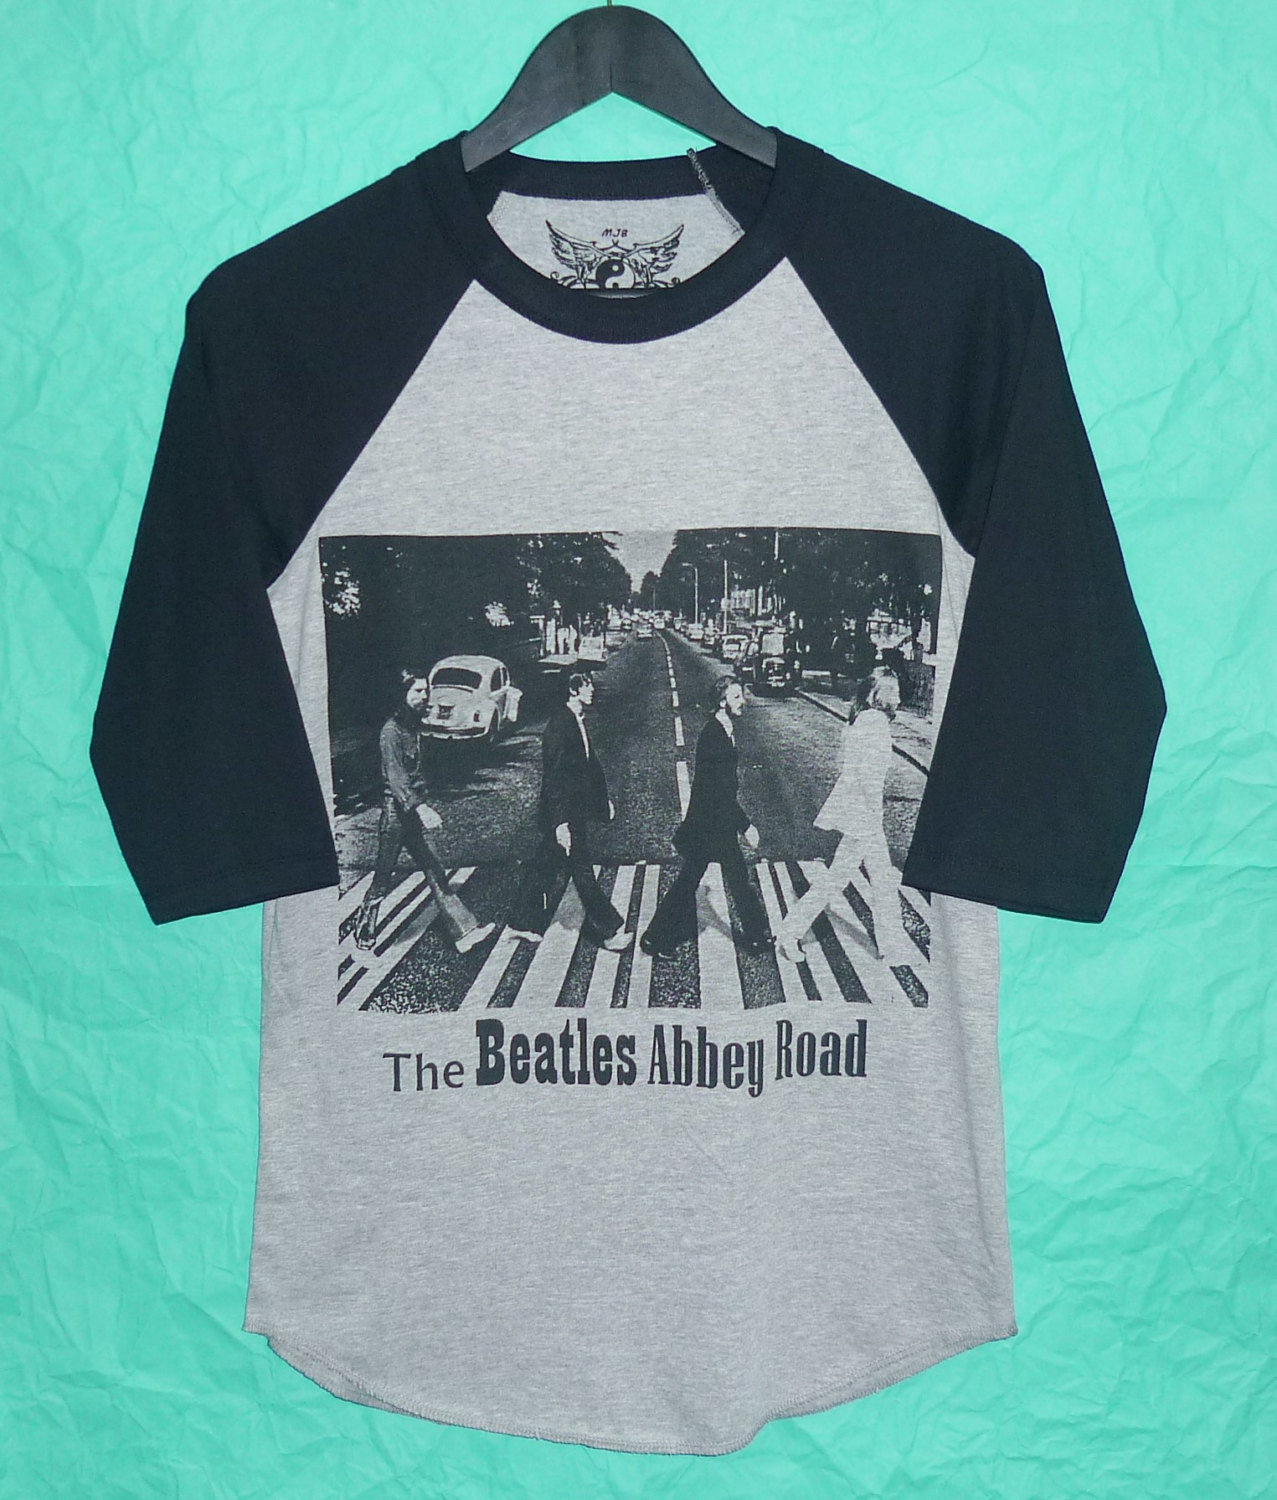 The beatles raglan on sale tshirt music s,m,l,xl abbey road gray black tee /crewneck/ baseball shirt/ men tee/ women t shirts ,black teen l